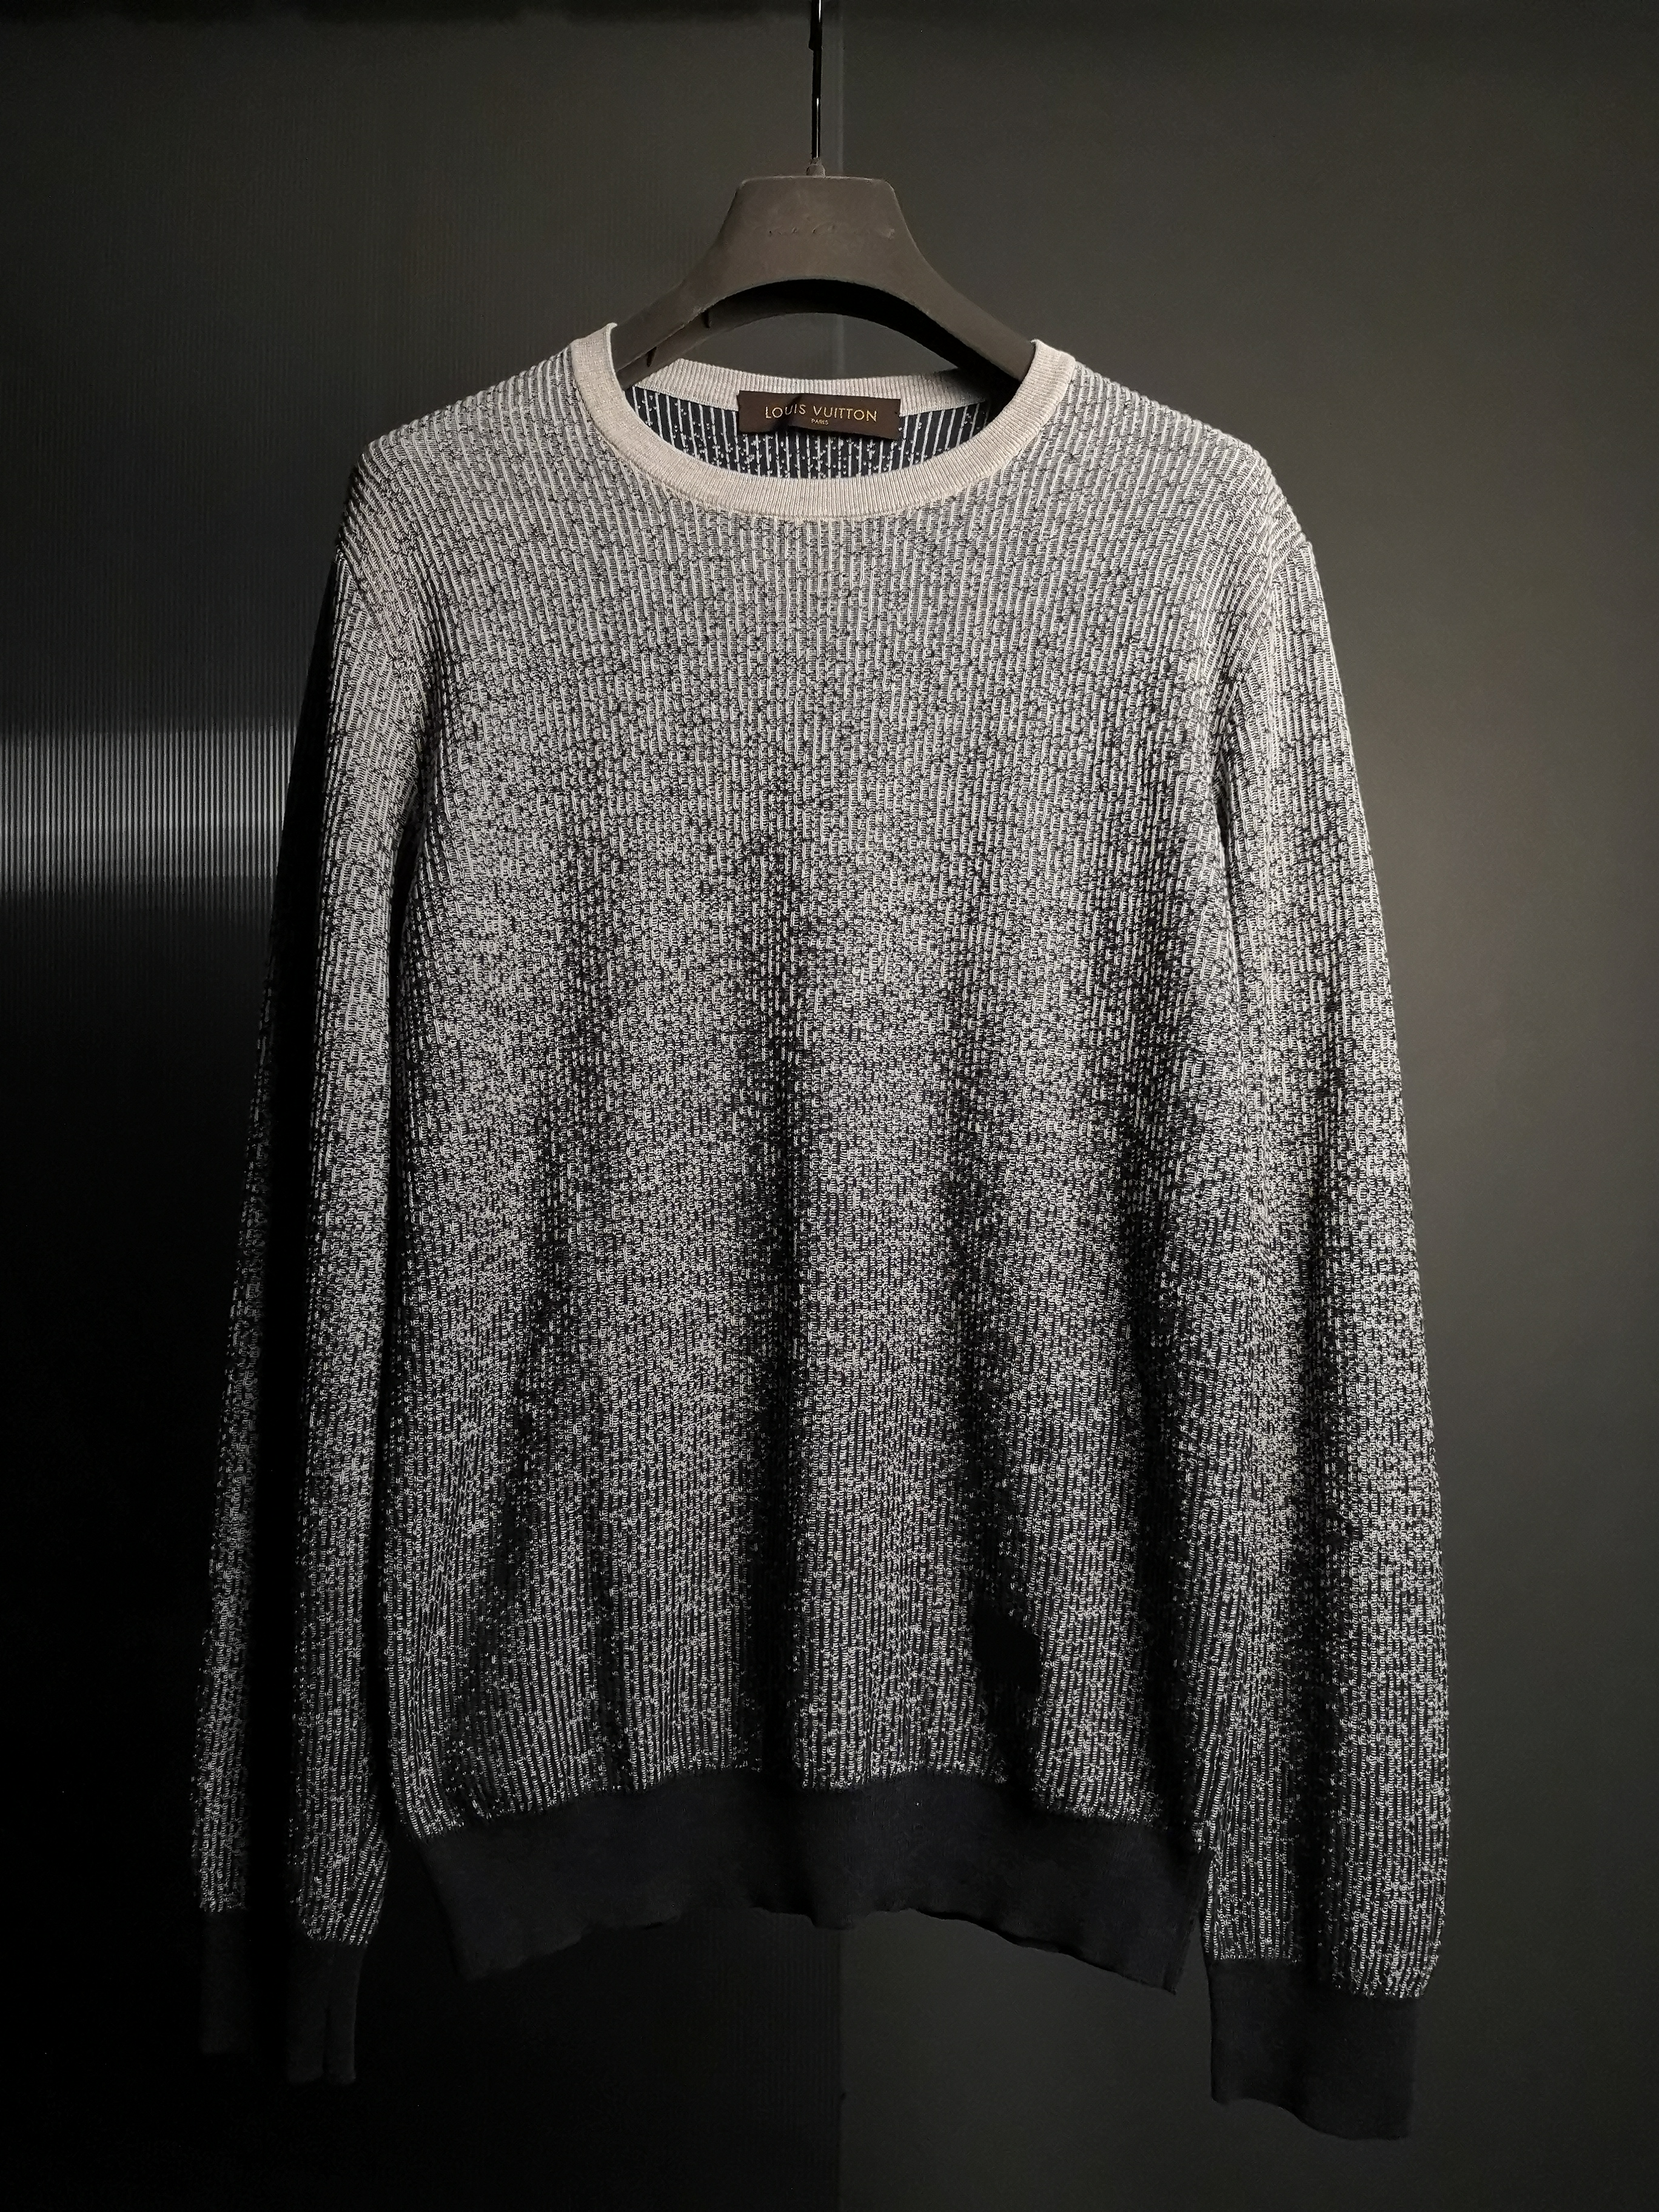 Louis Vuitton Lv Gradient Knitted Sweater Grailed